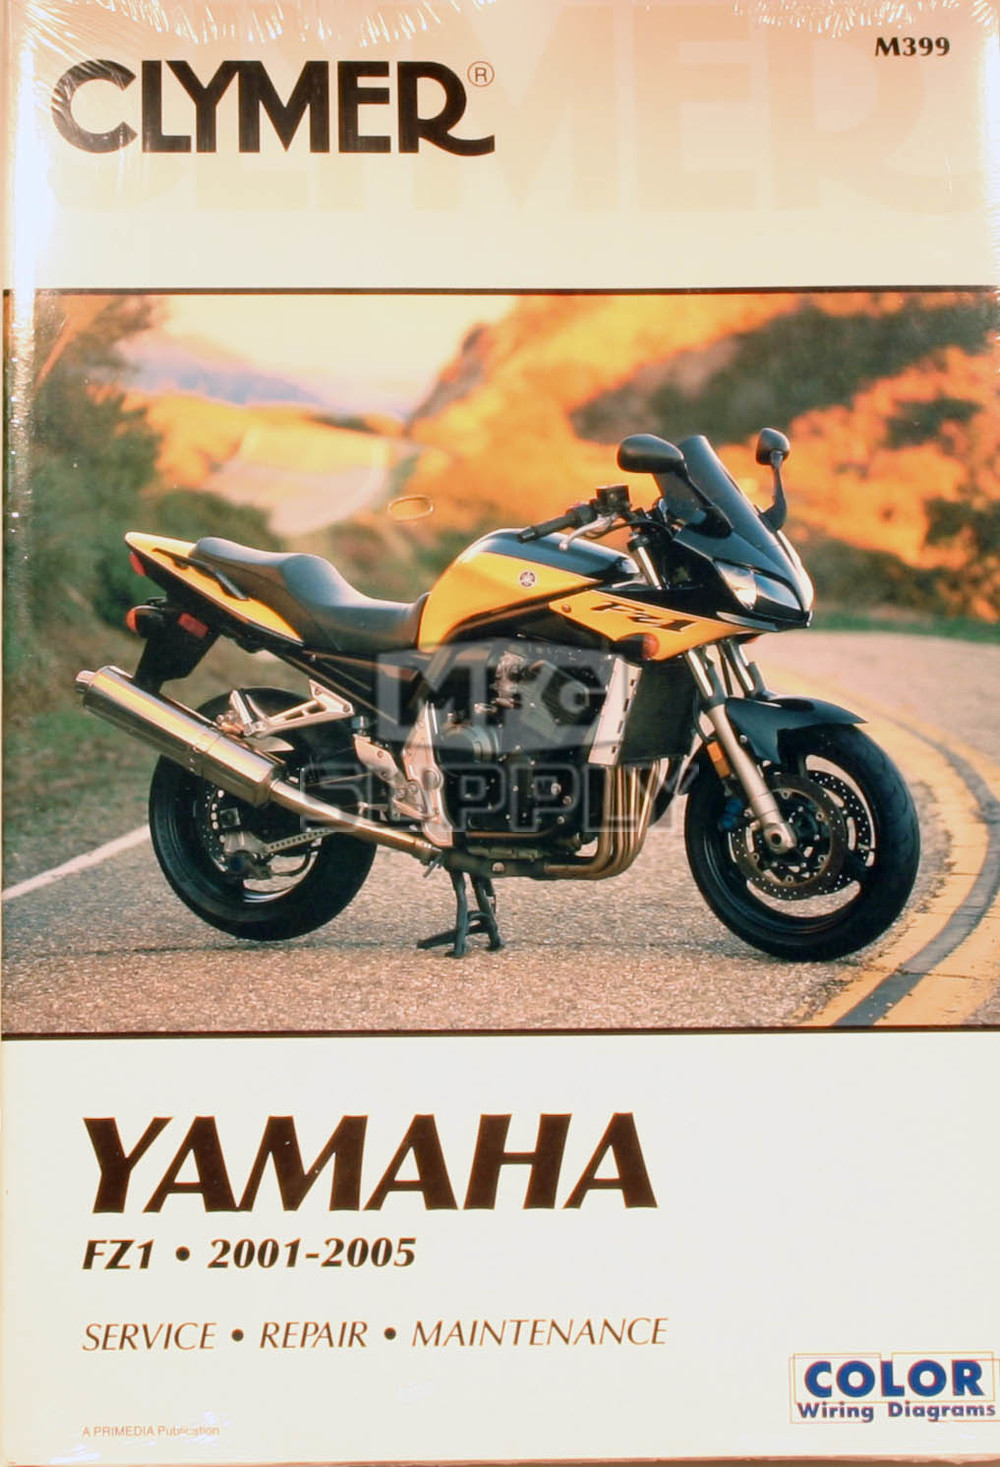 medium resolution of cm399 01 05 yamaha fz1 repair maintenance manual